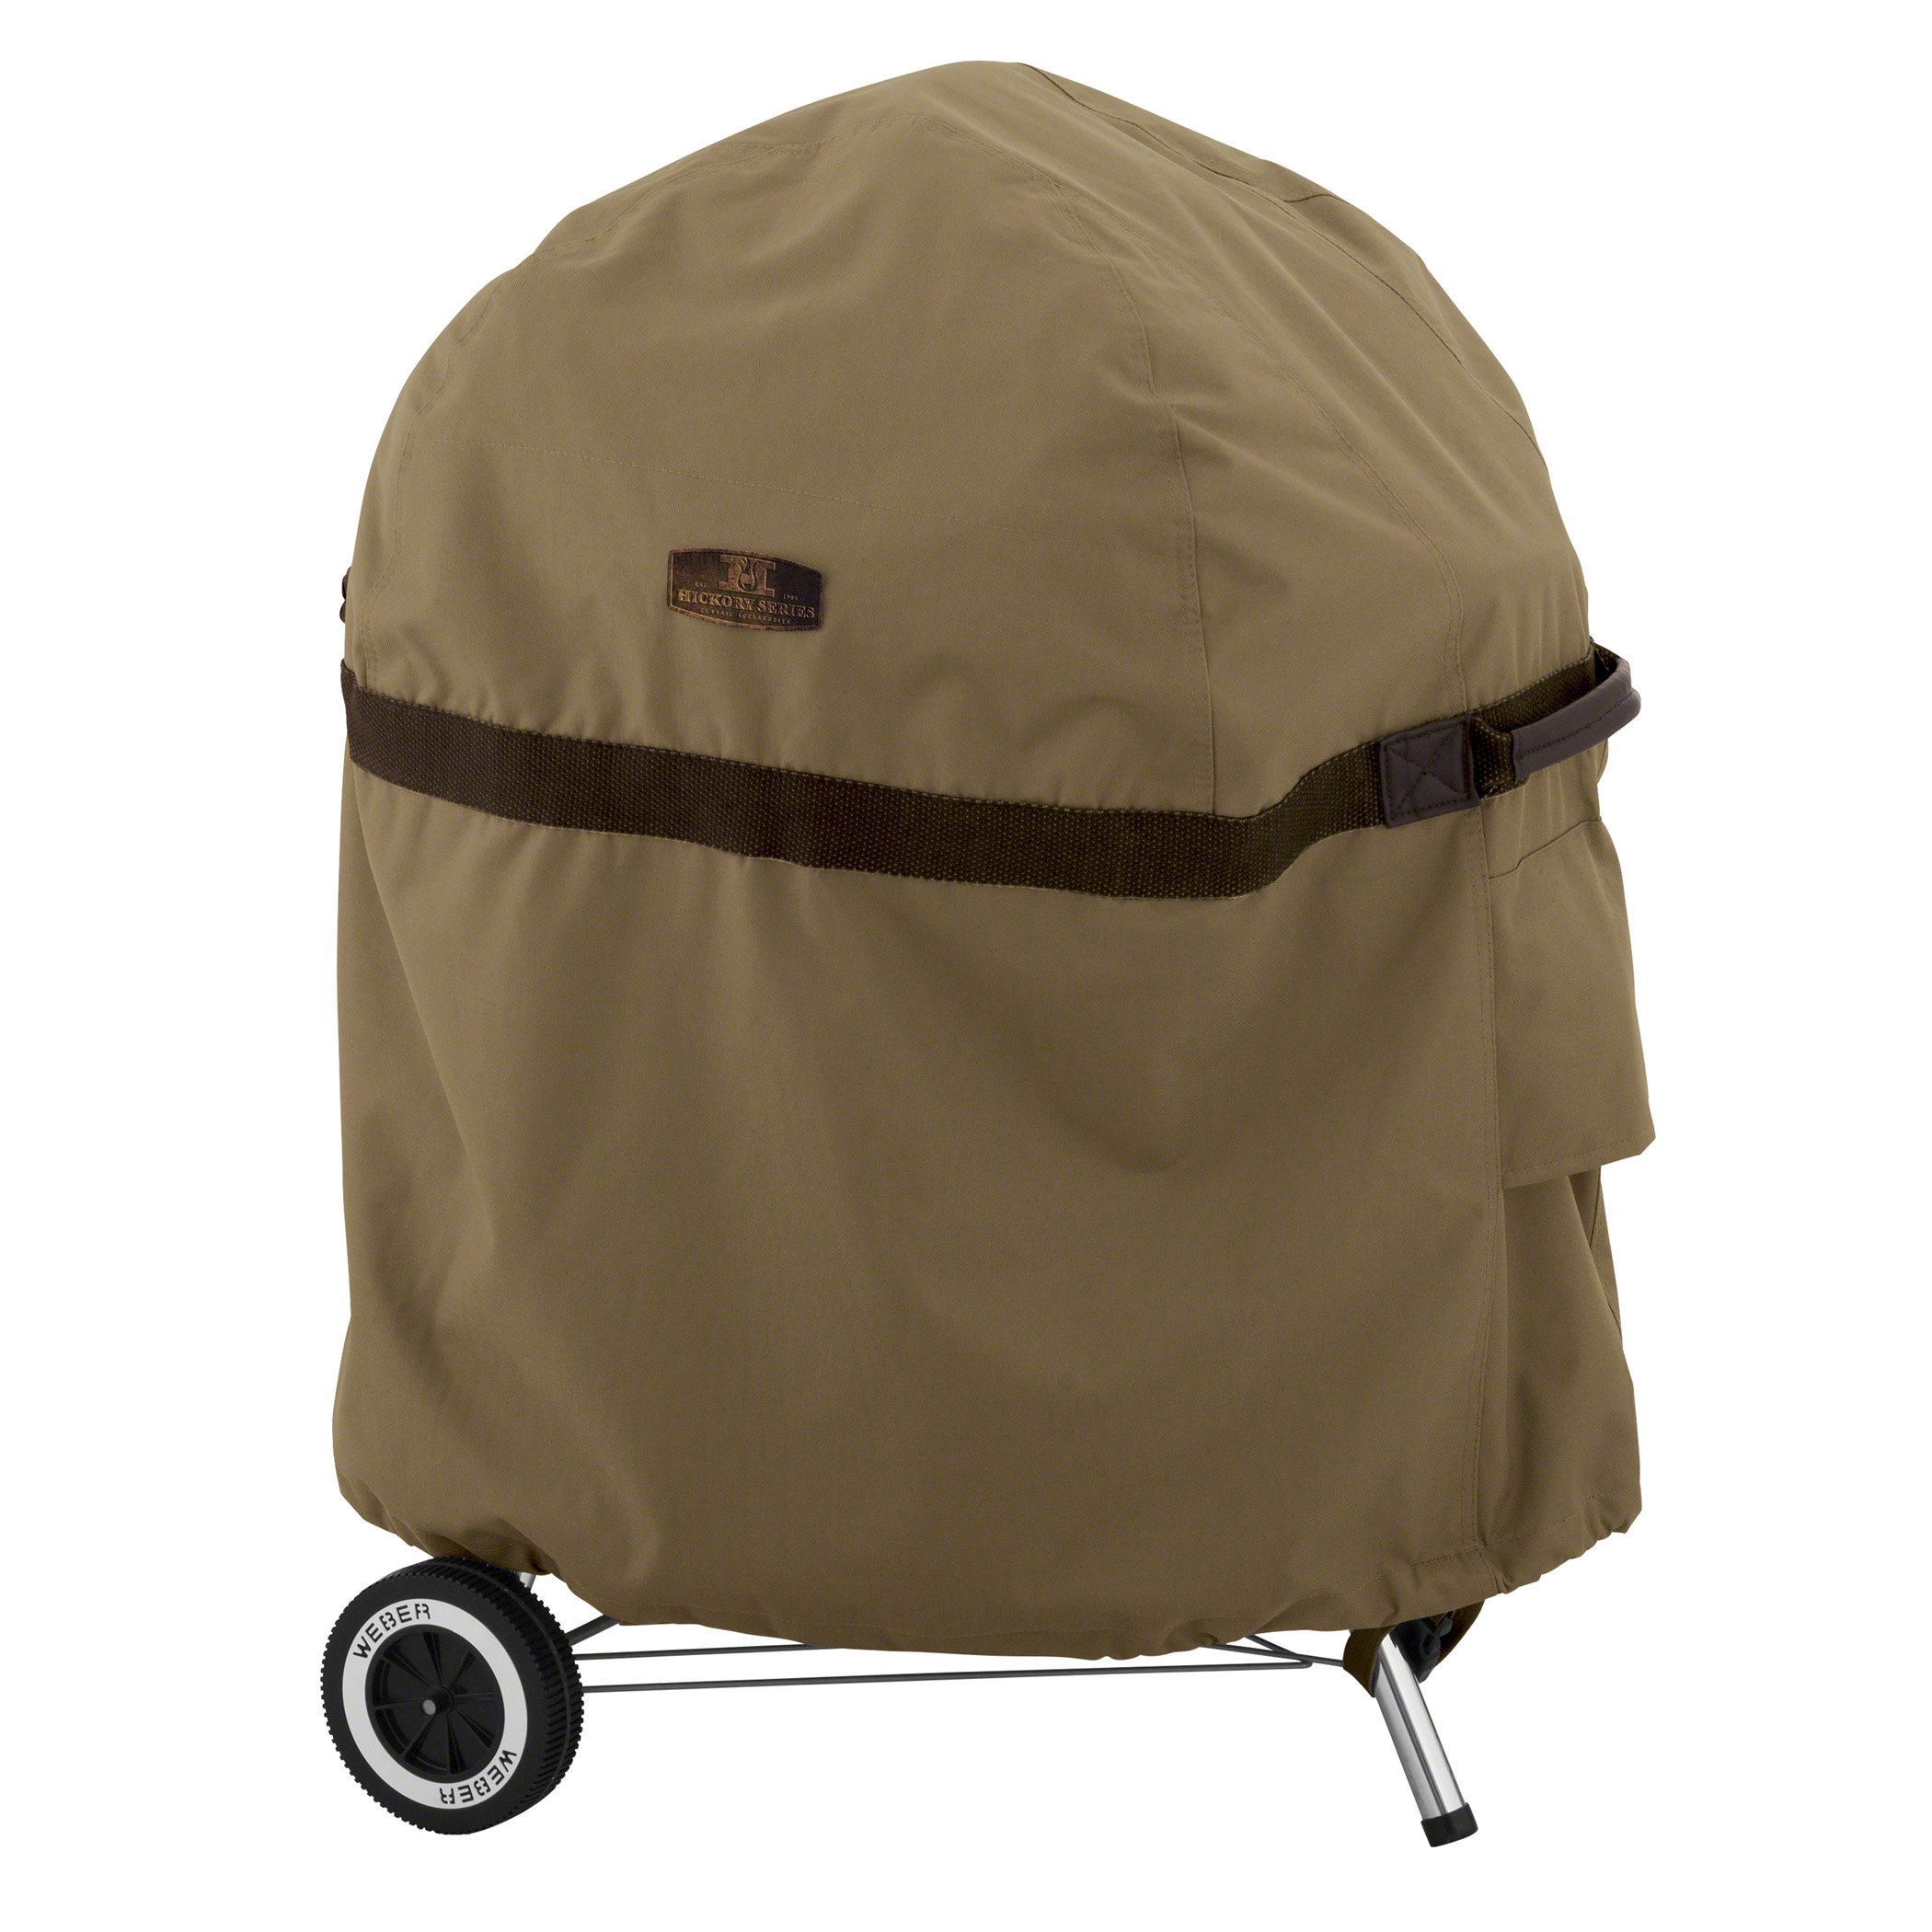 Classic Accessories Hickory Water-Resistant 26.5 Inch Kettle BBQ Grill Cover